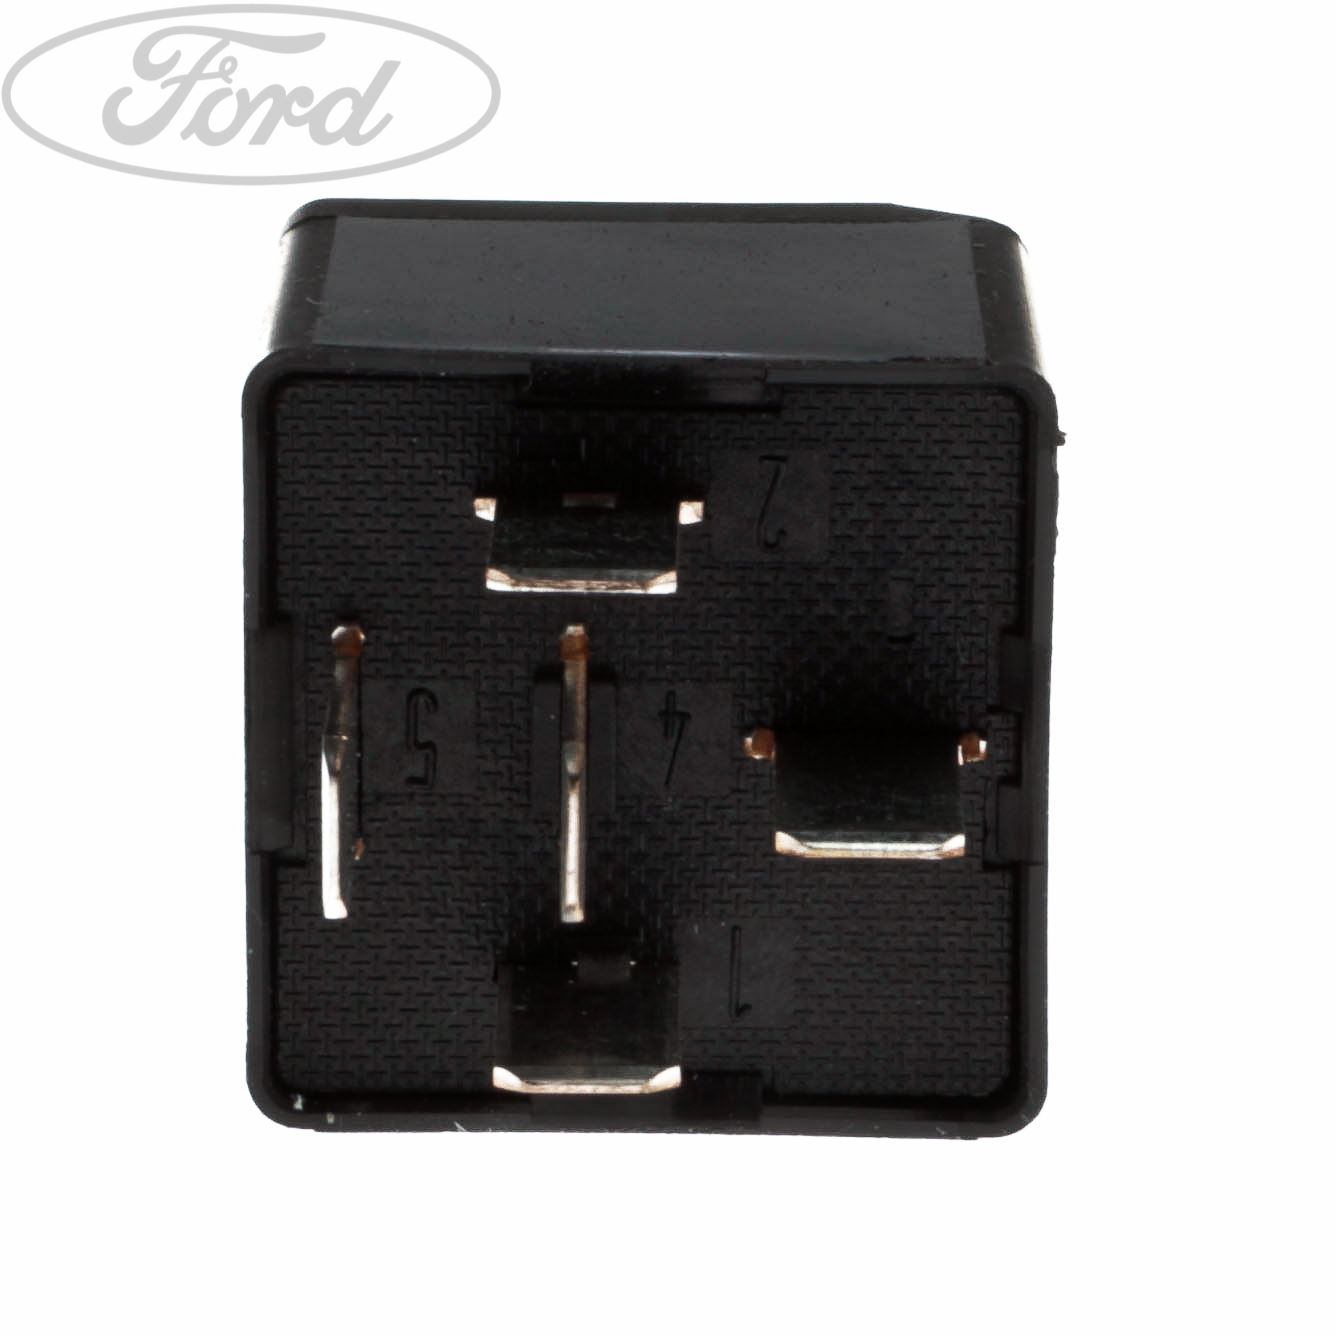 hight resolution of details about genuine ford air conditioner junction box relay 40 amp 1425753